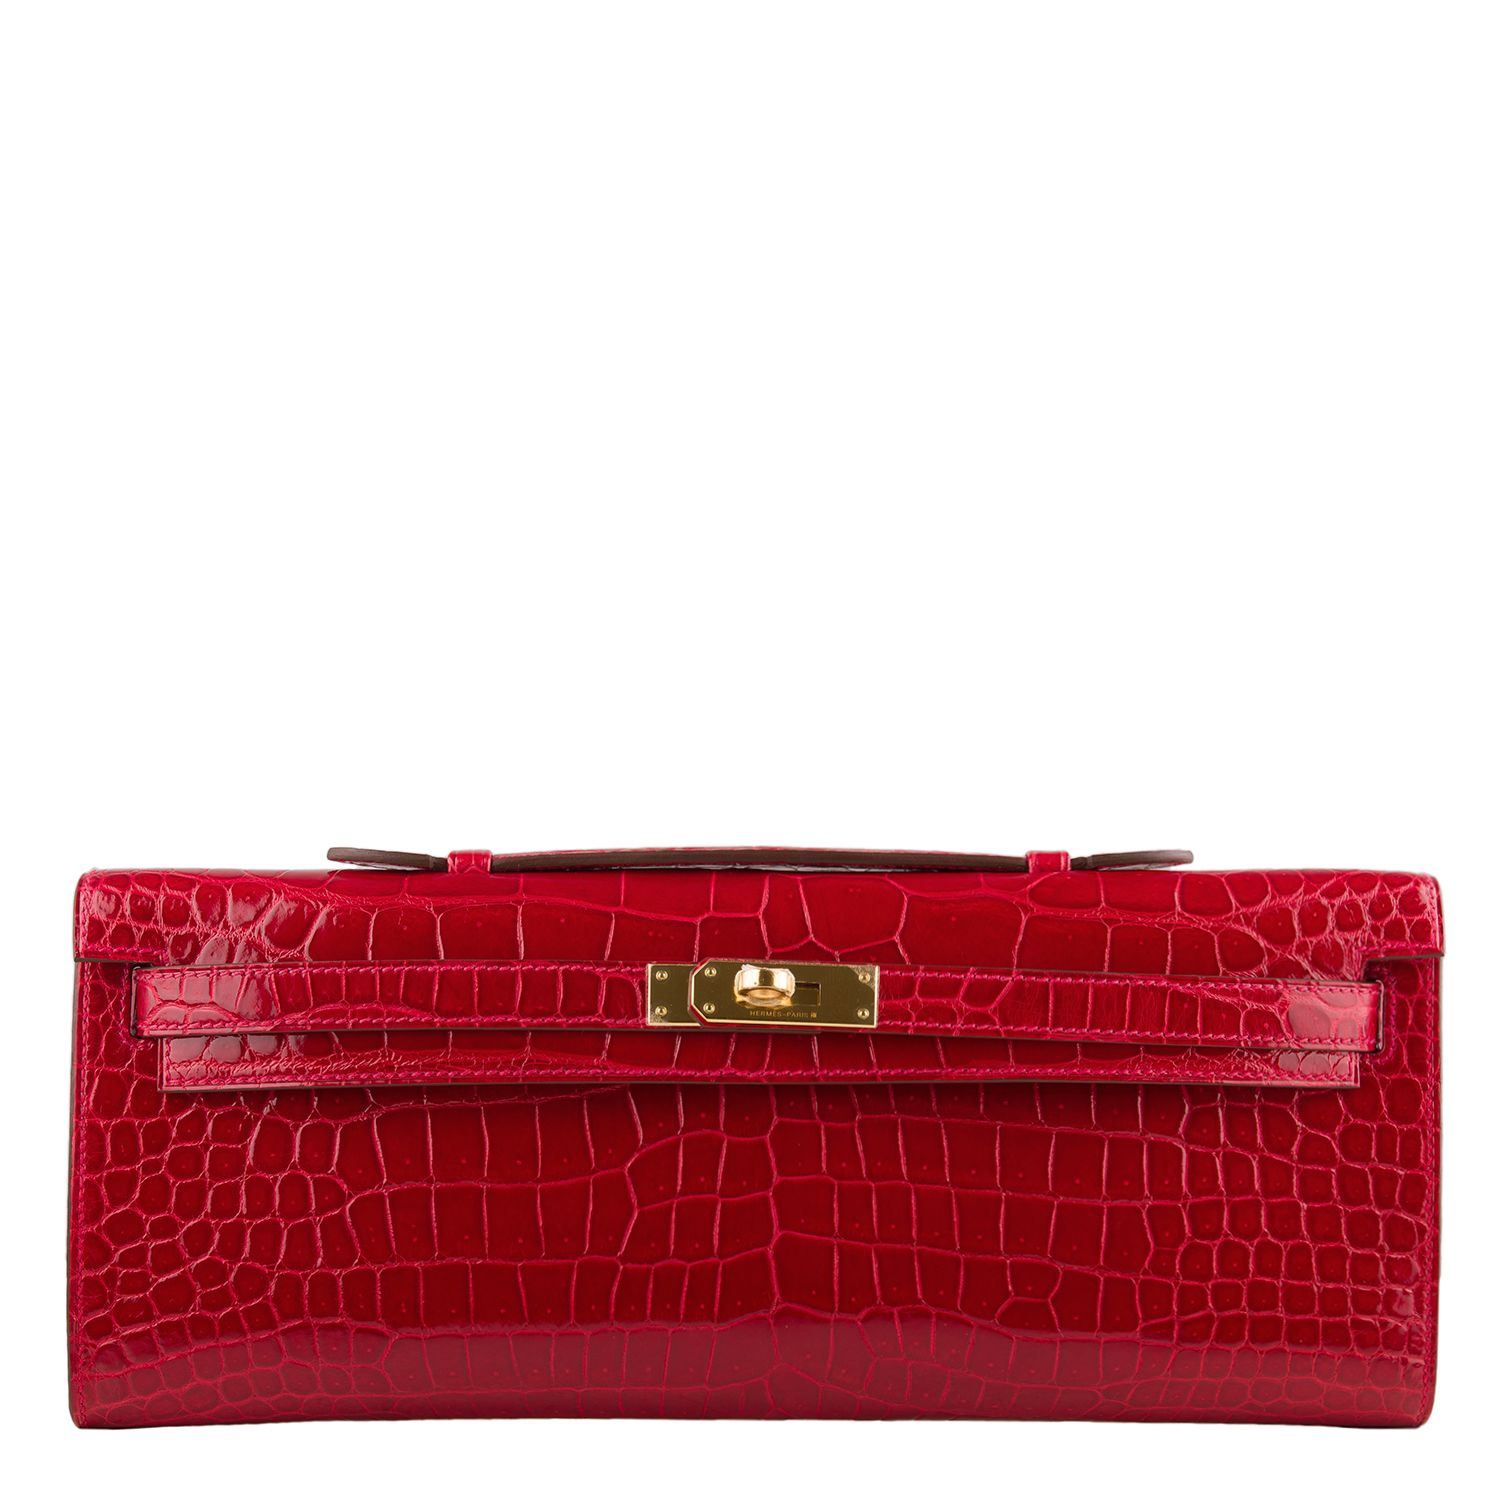 49bcfcf806c5  Hermes  Kelly Cut Braise Red Shiny Porosus Crocodile Gold Hardware  Clutch   Bag